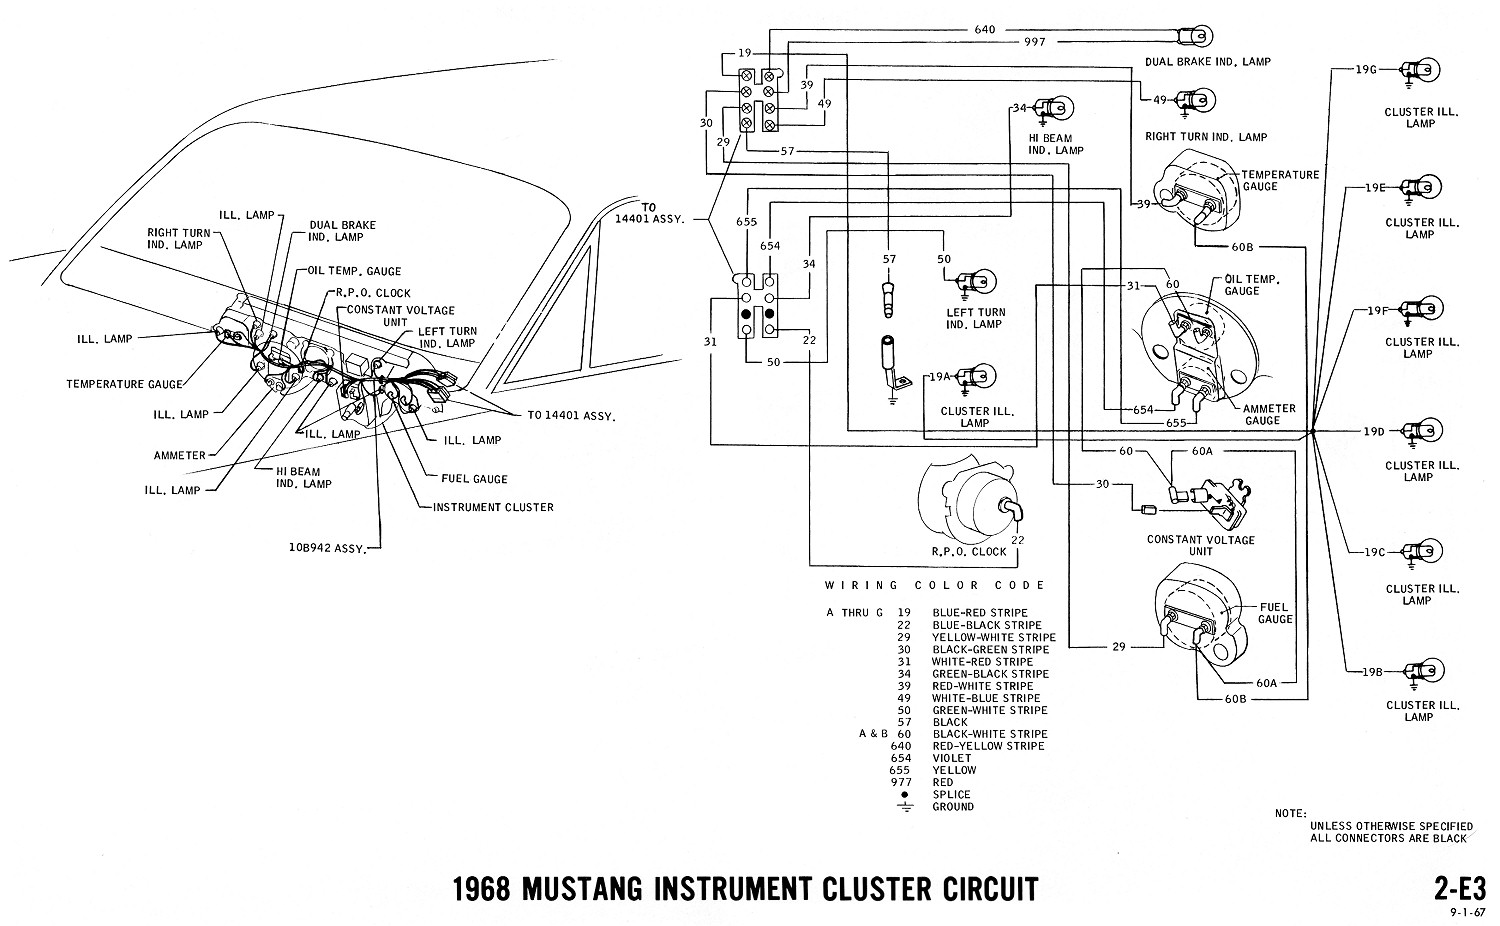 1968 Mustang Wiring Diagrams on 2007 f150 fuse diagram